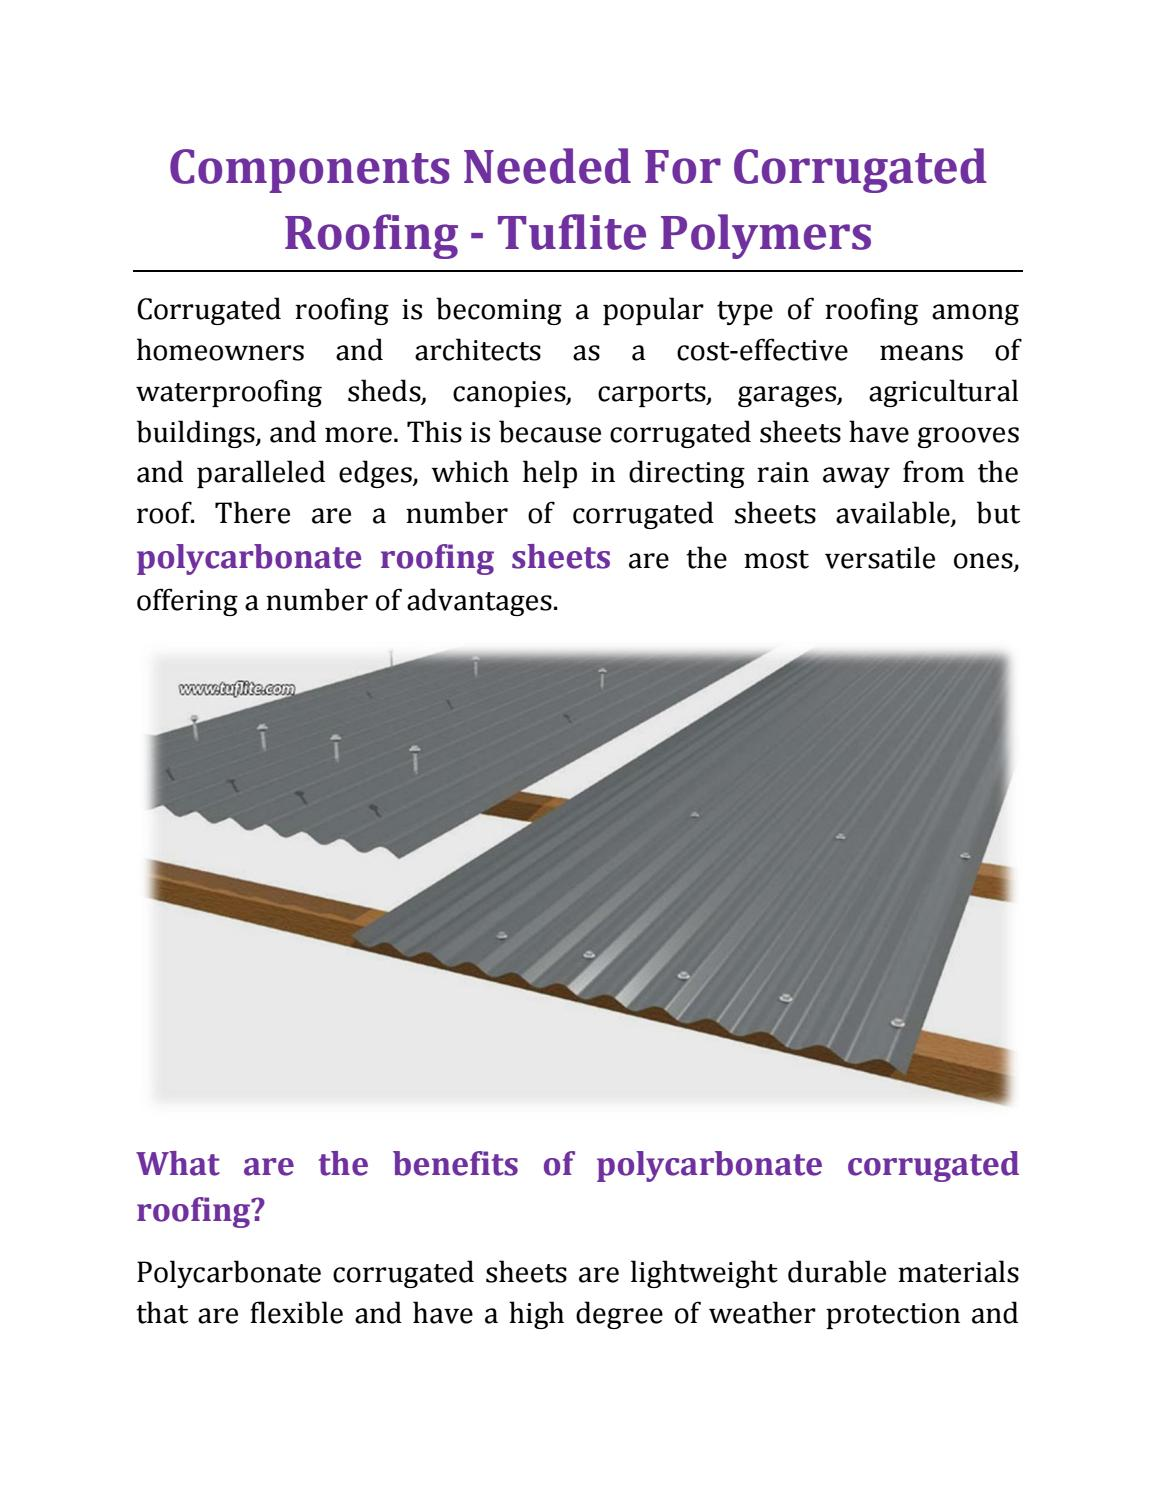 Components Needed For Corrugated Roofing Tuflite Polymers By Tuflite Polymers Issuu